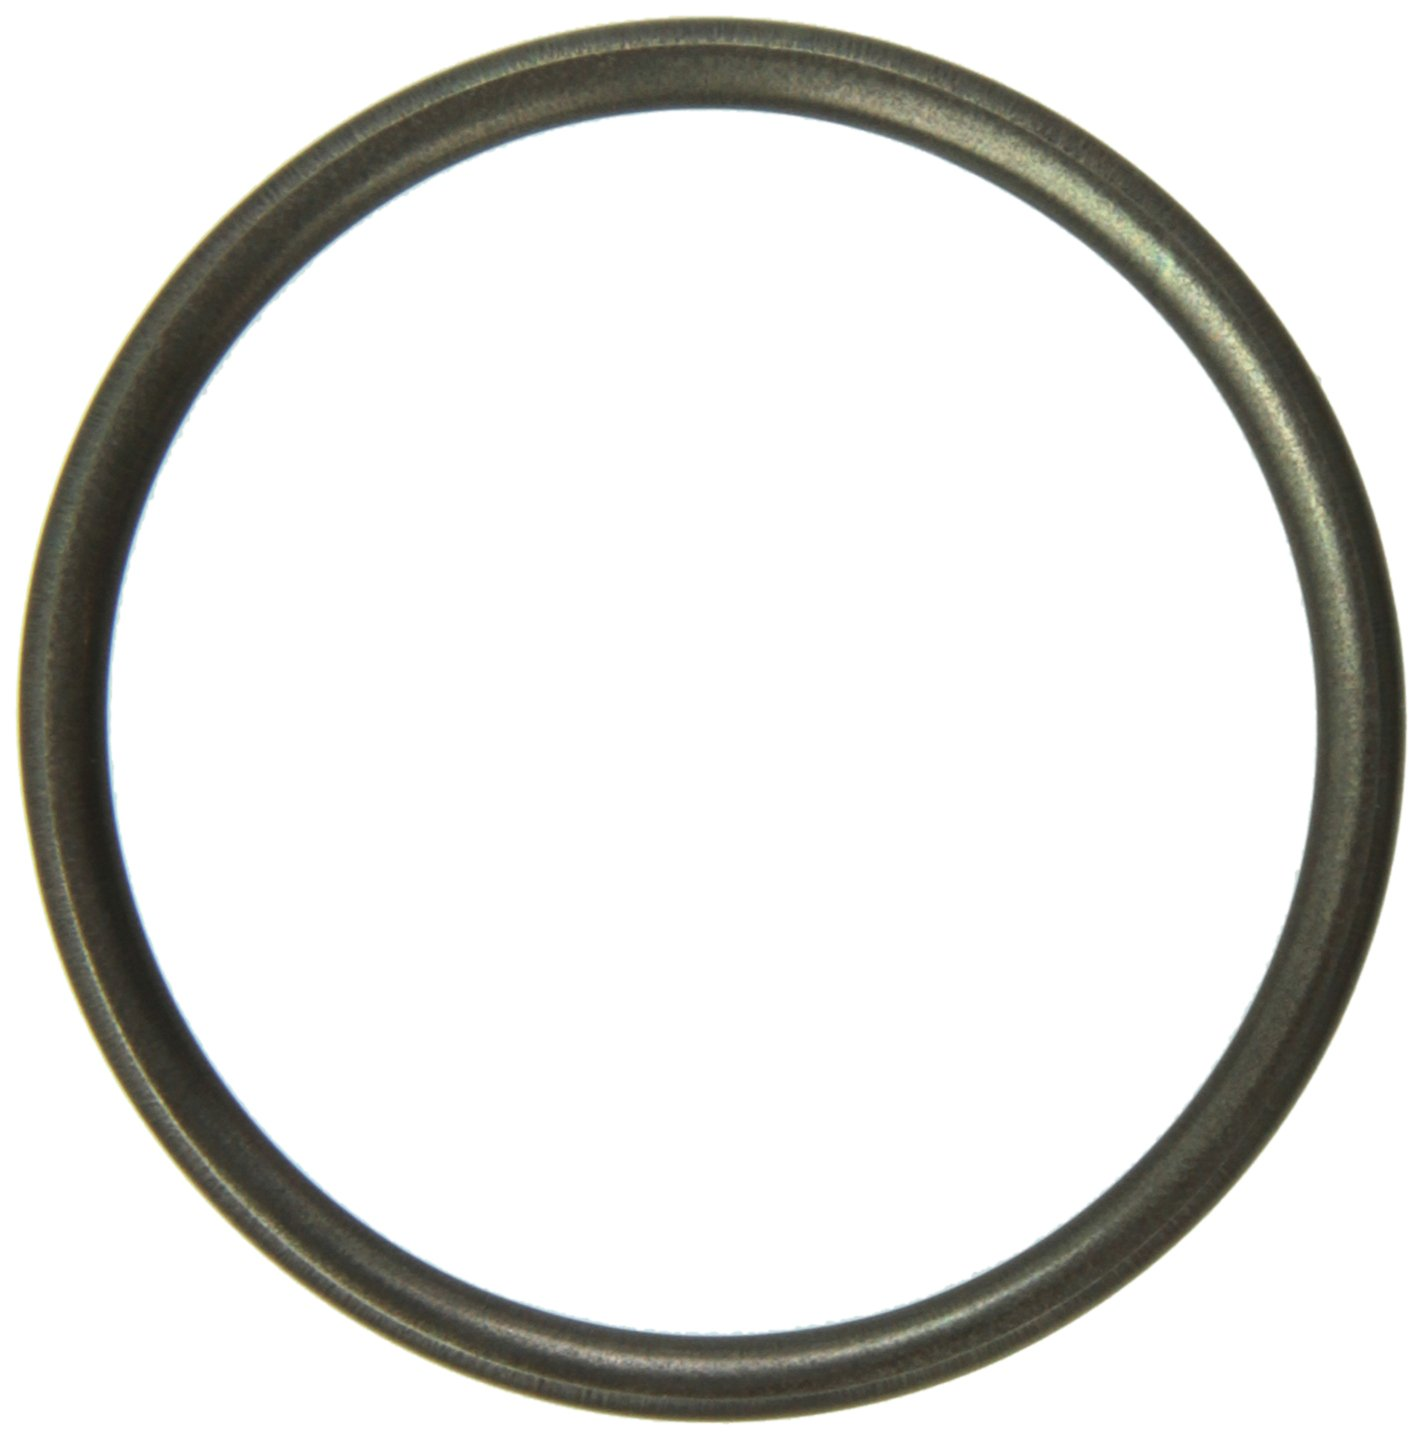 MAHLE Original F32017 Catalytic Converter Gasket